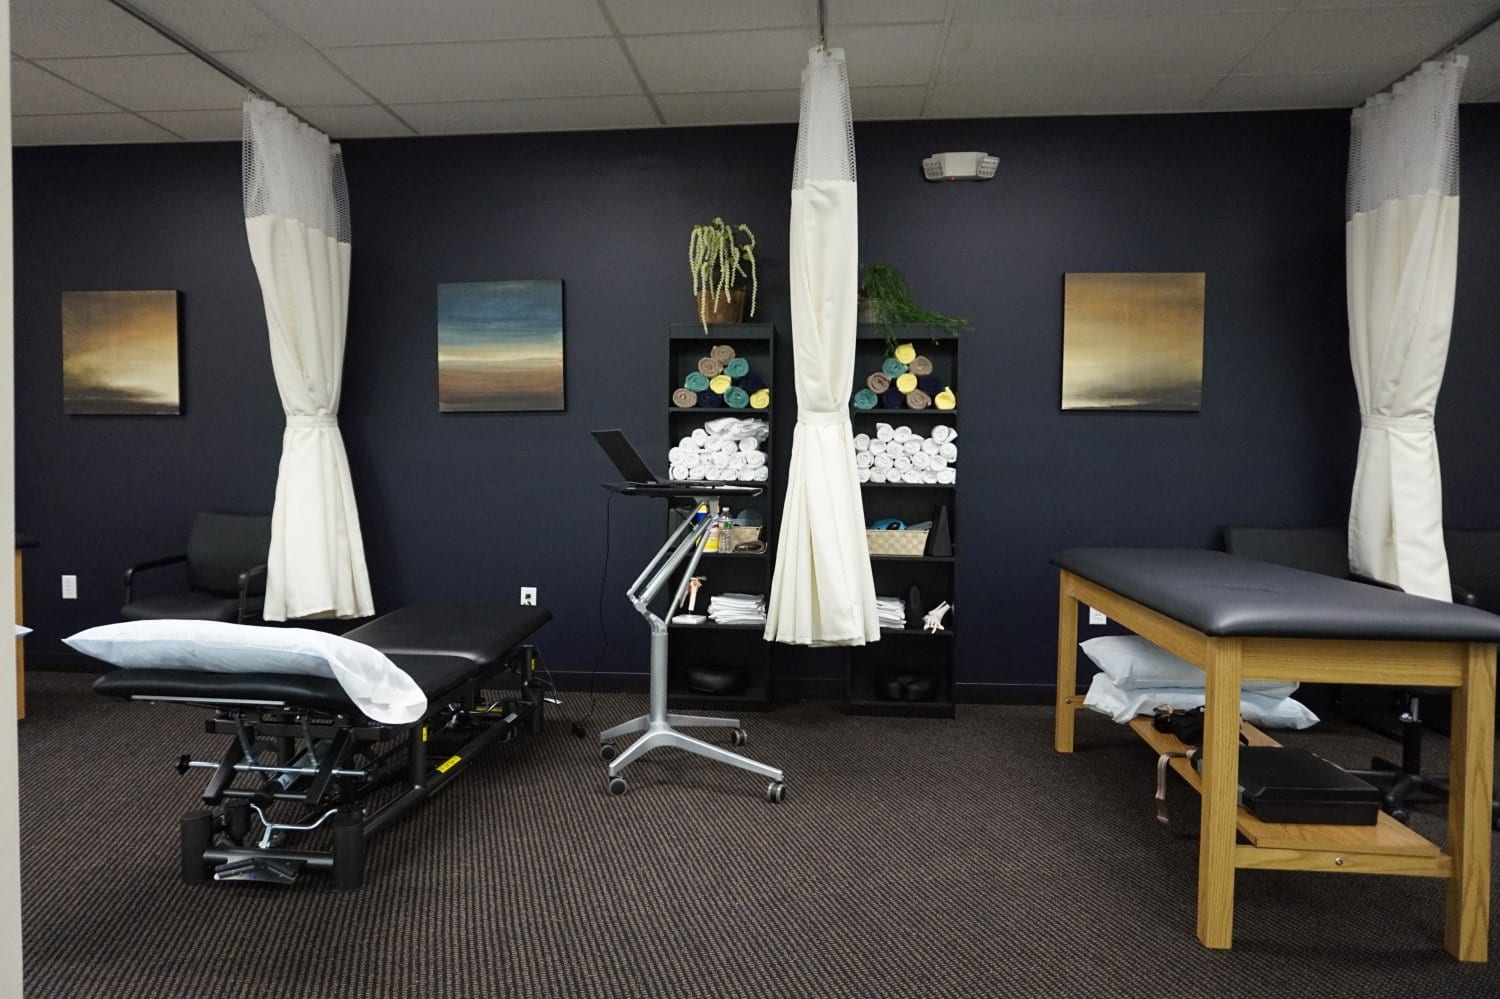 Here is an alternate angle of our physical therapy clinic interior at our Winchester Massachusetts location.